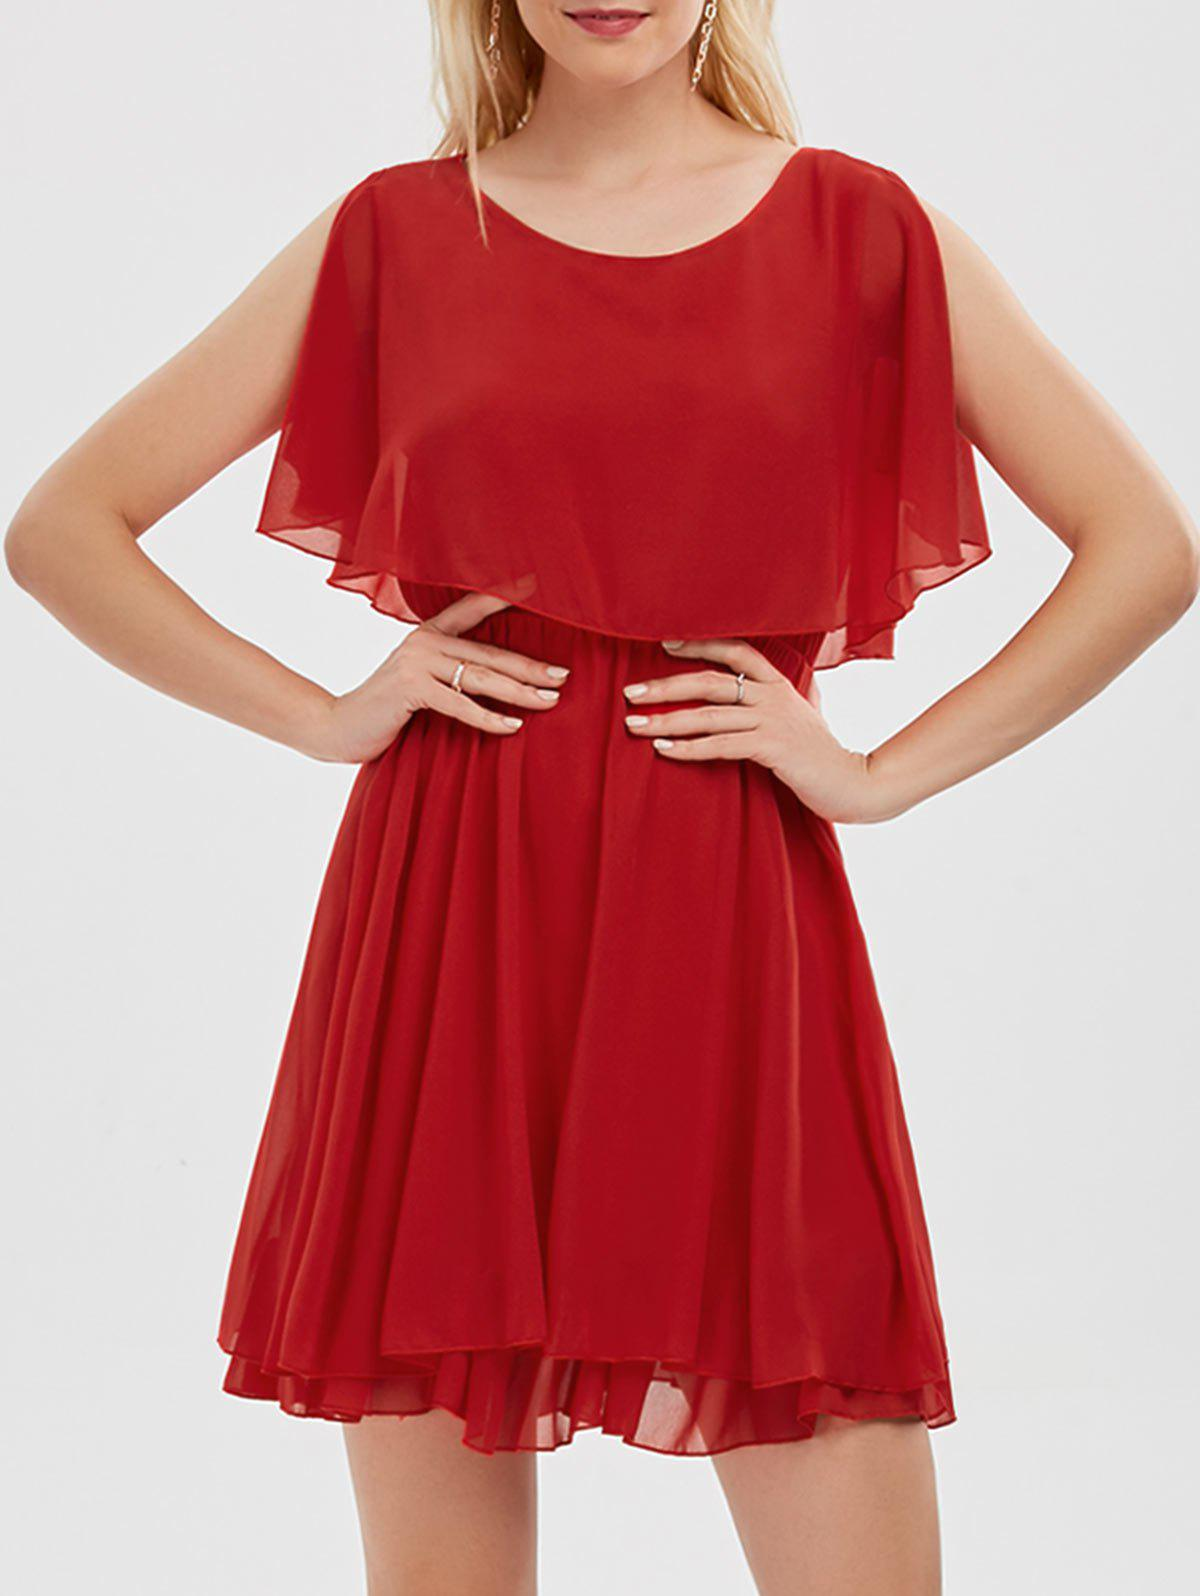 Ruffle Chiffon Cold Shoulder Mini Dress - Rouge 2XL